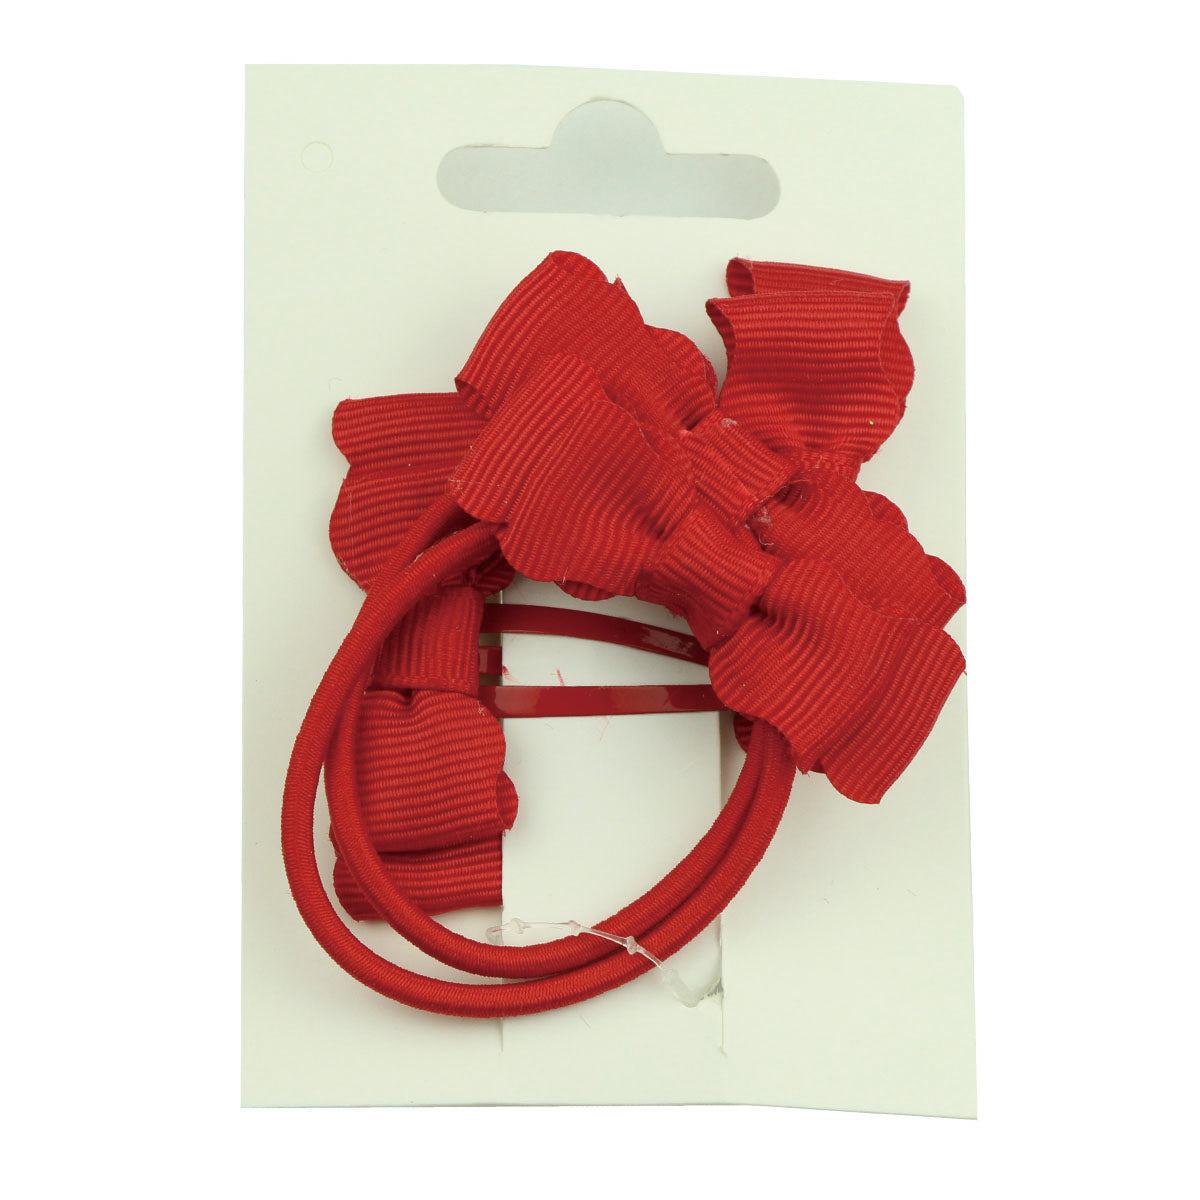 wholesale red grosgrain ribbon bow 5cm snap coated hair clip ribbon bow hair tie set girl hair accessories kits 5770 - SOHOBUCKS CO.,LIMITED